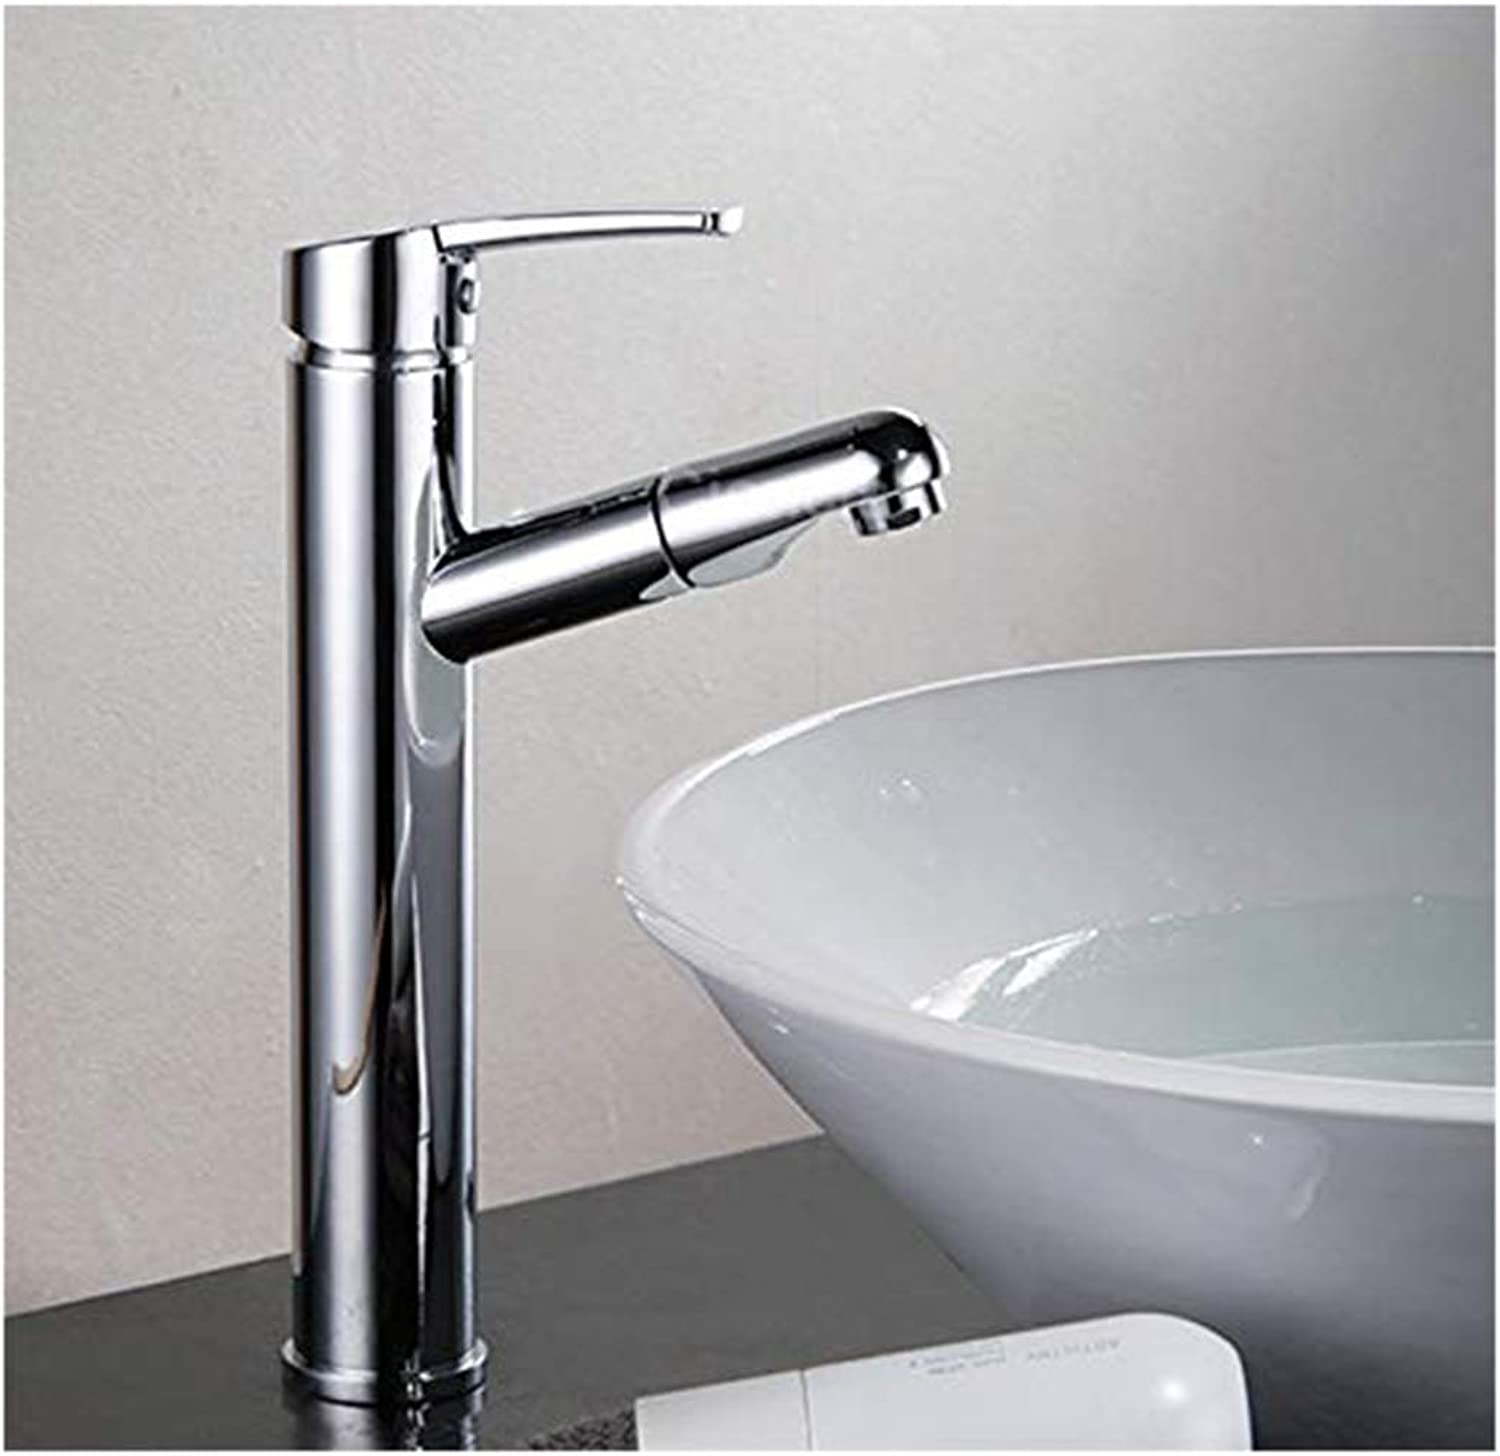 Chrome-Plated Adjustable Temperature-Sensitive Led Faucetpull-Type Hot and Cold Above Counter Basin High Basin